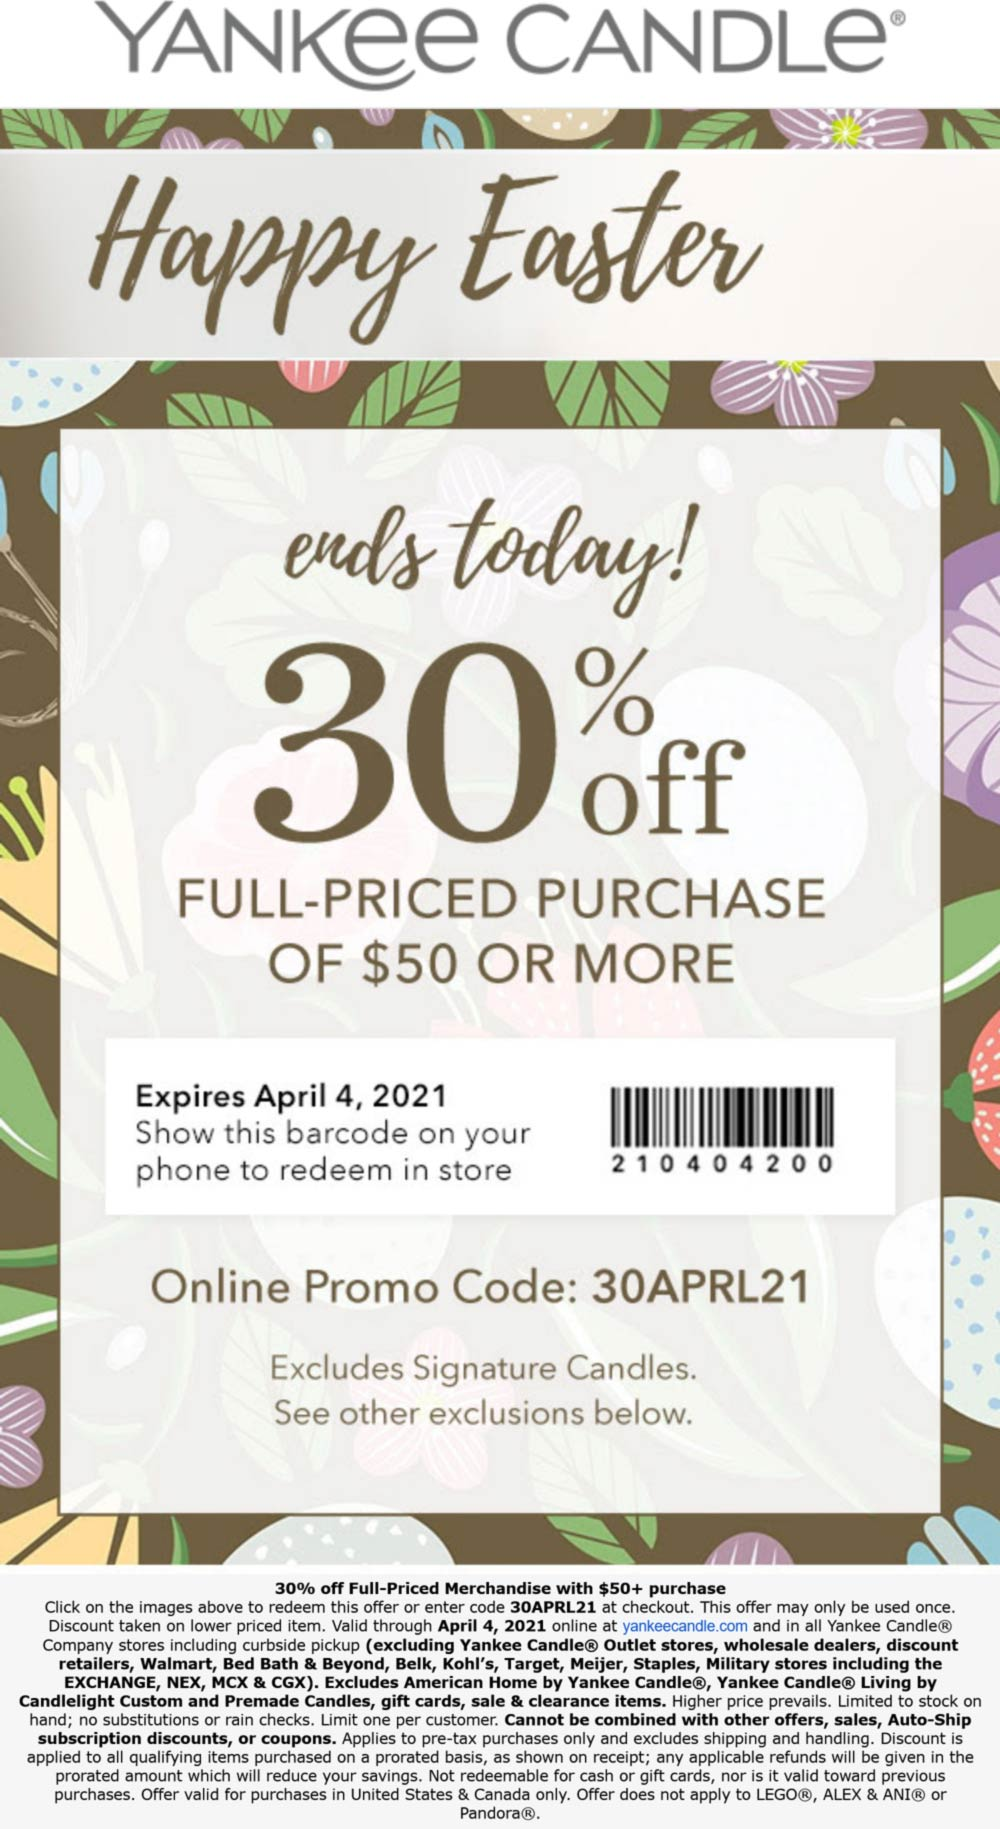 Yankee Candle stores Coupon  30% off $50 today at Yankee Candle, or online via promo code 30APRIL21 #yankeecandle